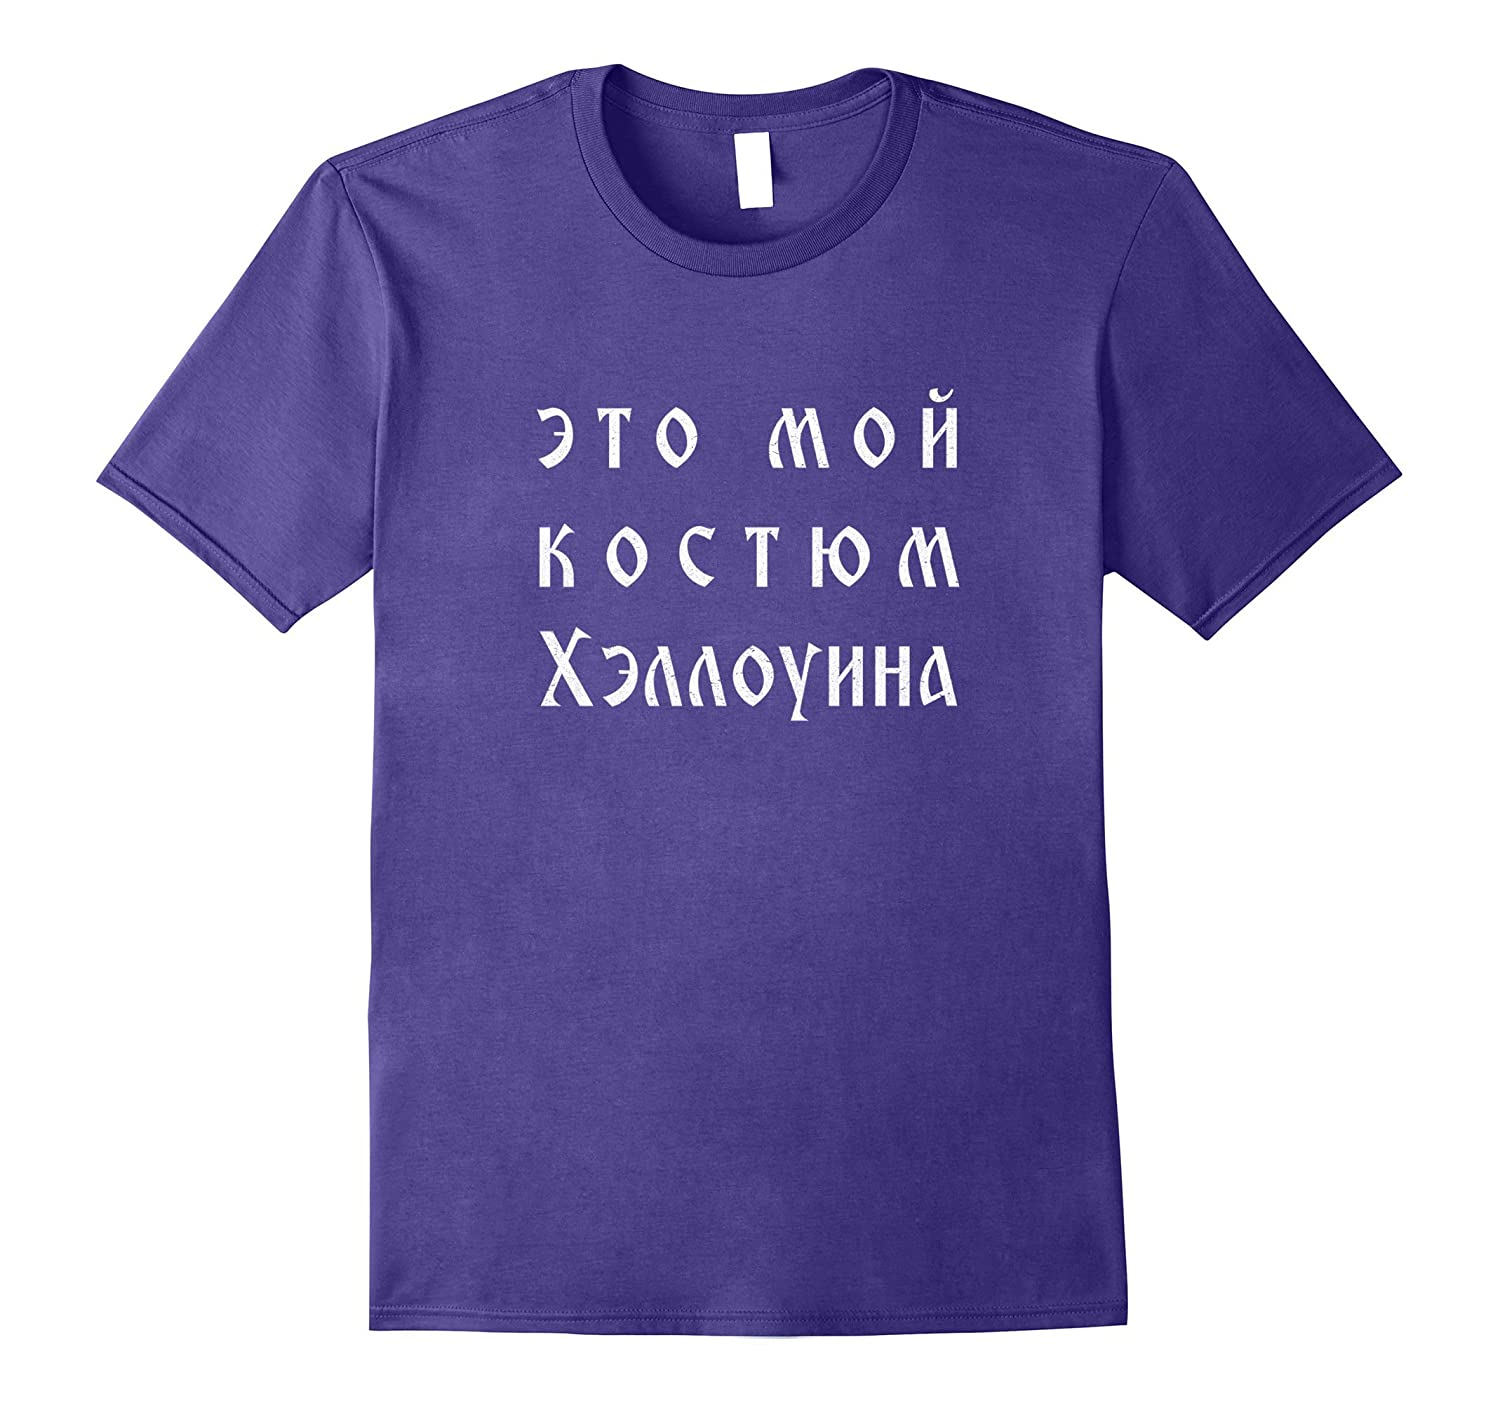 This Is My Halloween Costume T-shirt Funny Russian Cyrilic-ANZ